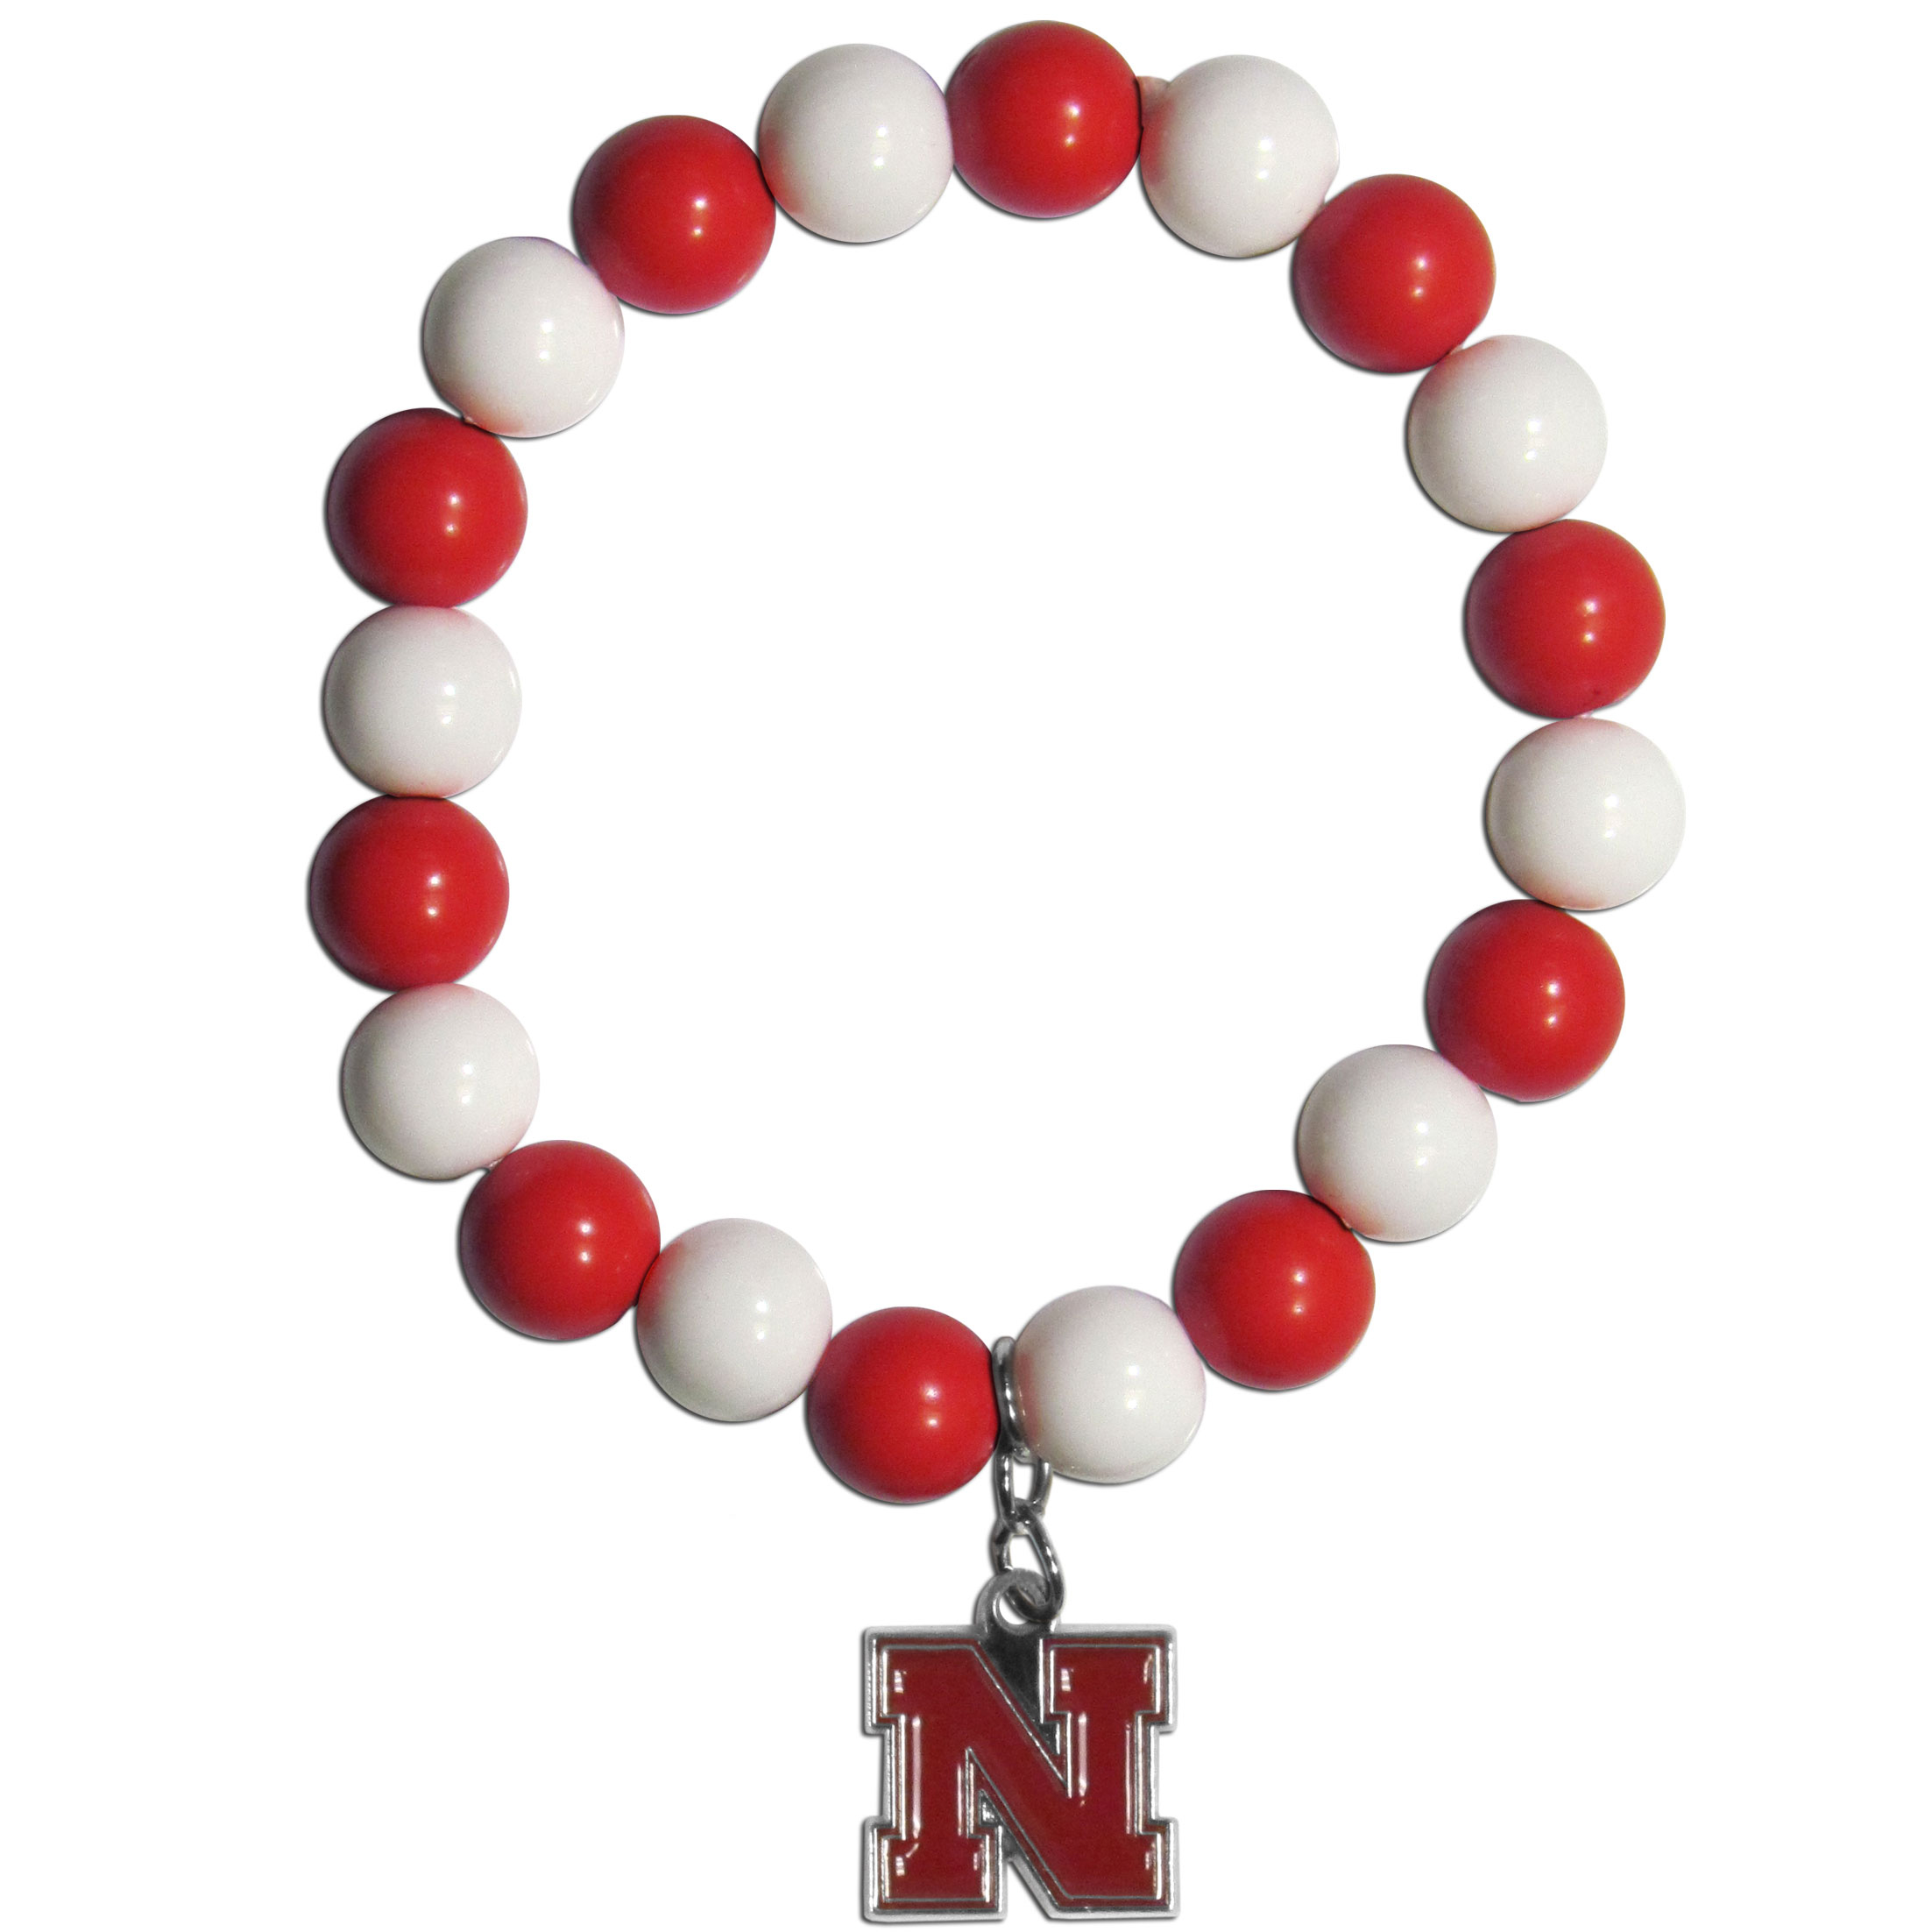 Nebraska Cornhuskers Fan Bead Bracelet - Flash your Nebraska Cornhuskers spirit with this bright stretch bracelet. This new bracelet features multicolored team beads on stretch cord with a nickel-free enameled chrome team charm. This bracelet adds the perfect pop of color to your game day accessories.